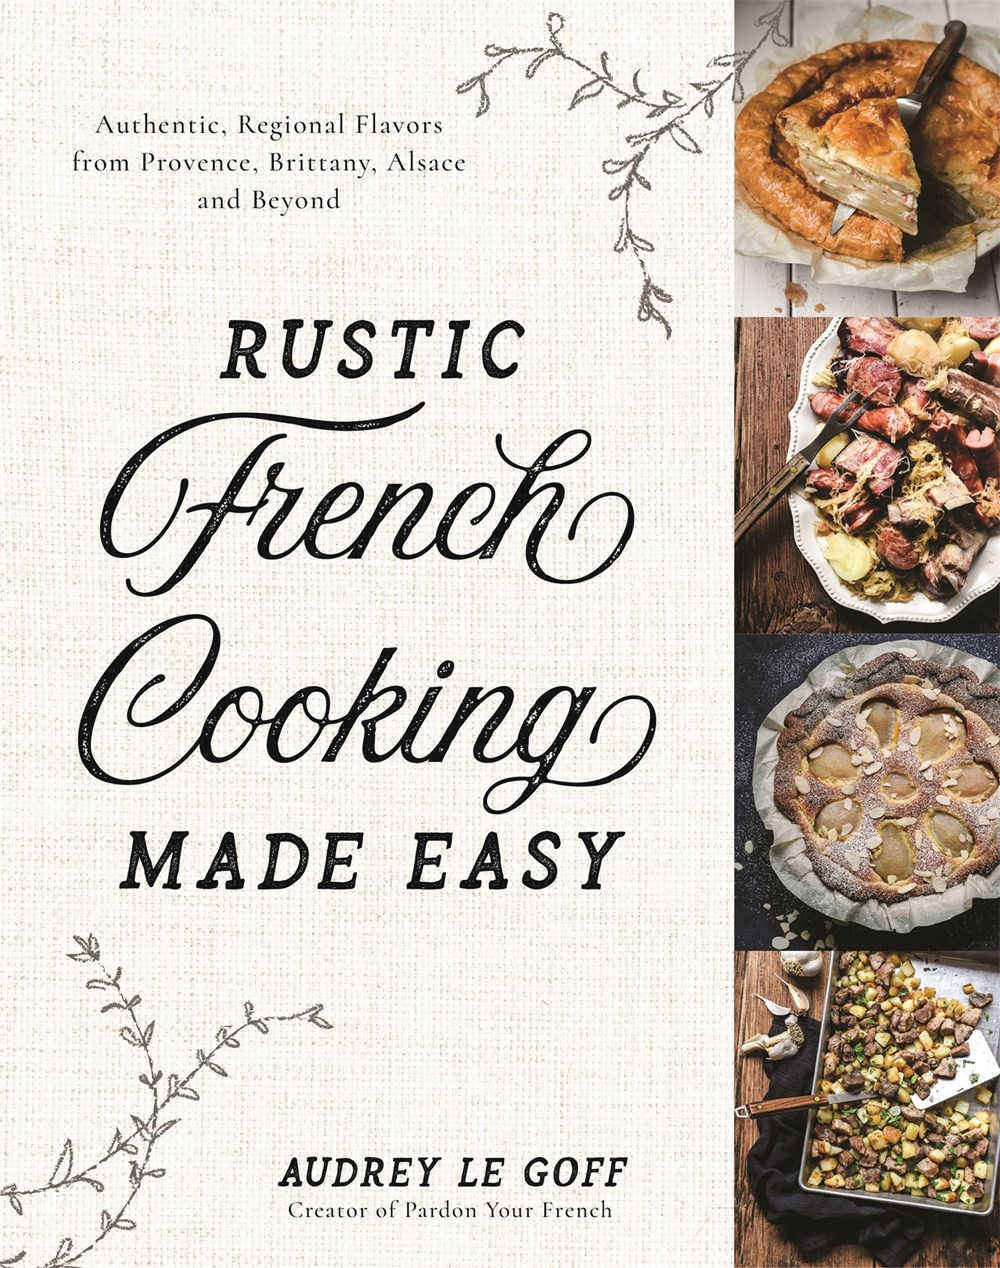 Rustic French Cooking Made Easy - Leave haute cuisine to fussy French restaurants, and dive into simple, comforting classics. Ontario author, Audrey Le Goff, founder of the blog Pardon Your French, dispels the myth that real French cooking is tricky and complicated. Home cooks interested in the popular French approach to cooking for health and happiness, will delight in these authentic, approachable recipes, while devoted French cooking fans will discover delicious staples rarely tasted outside of the French family kitchen. Page Street Publishing, Oct. 8, 2019.Read more here »